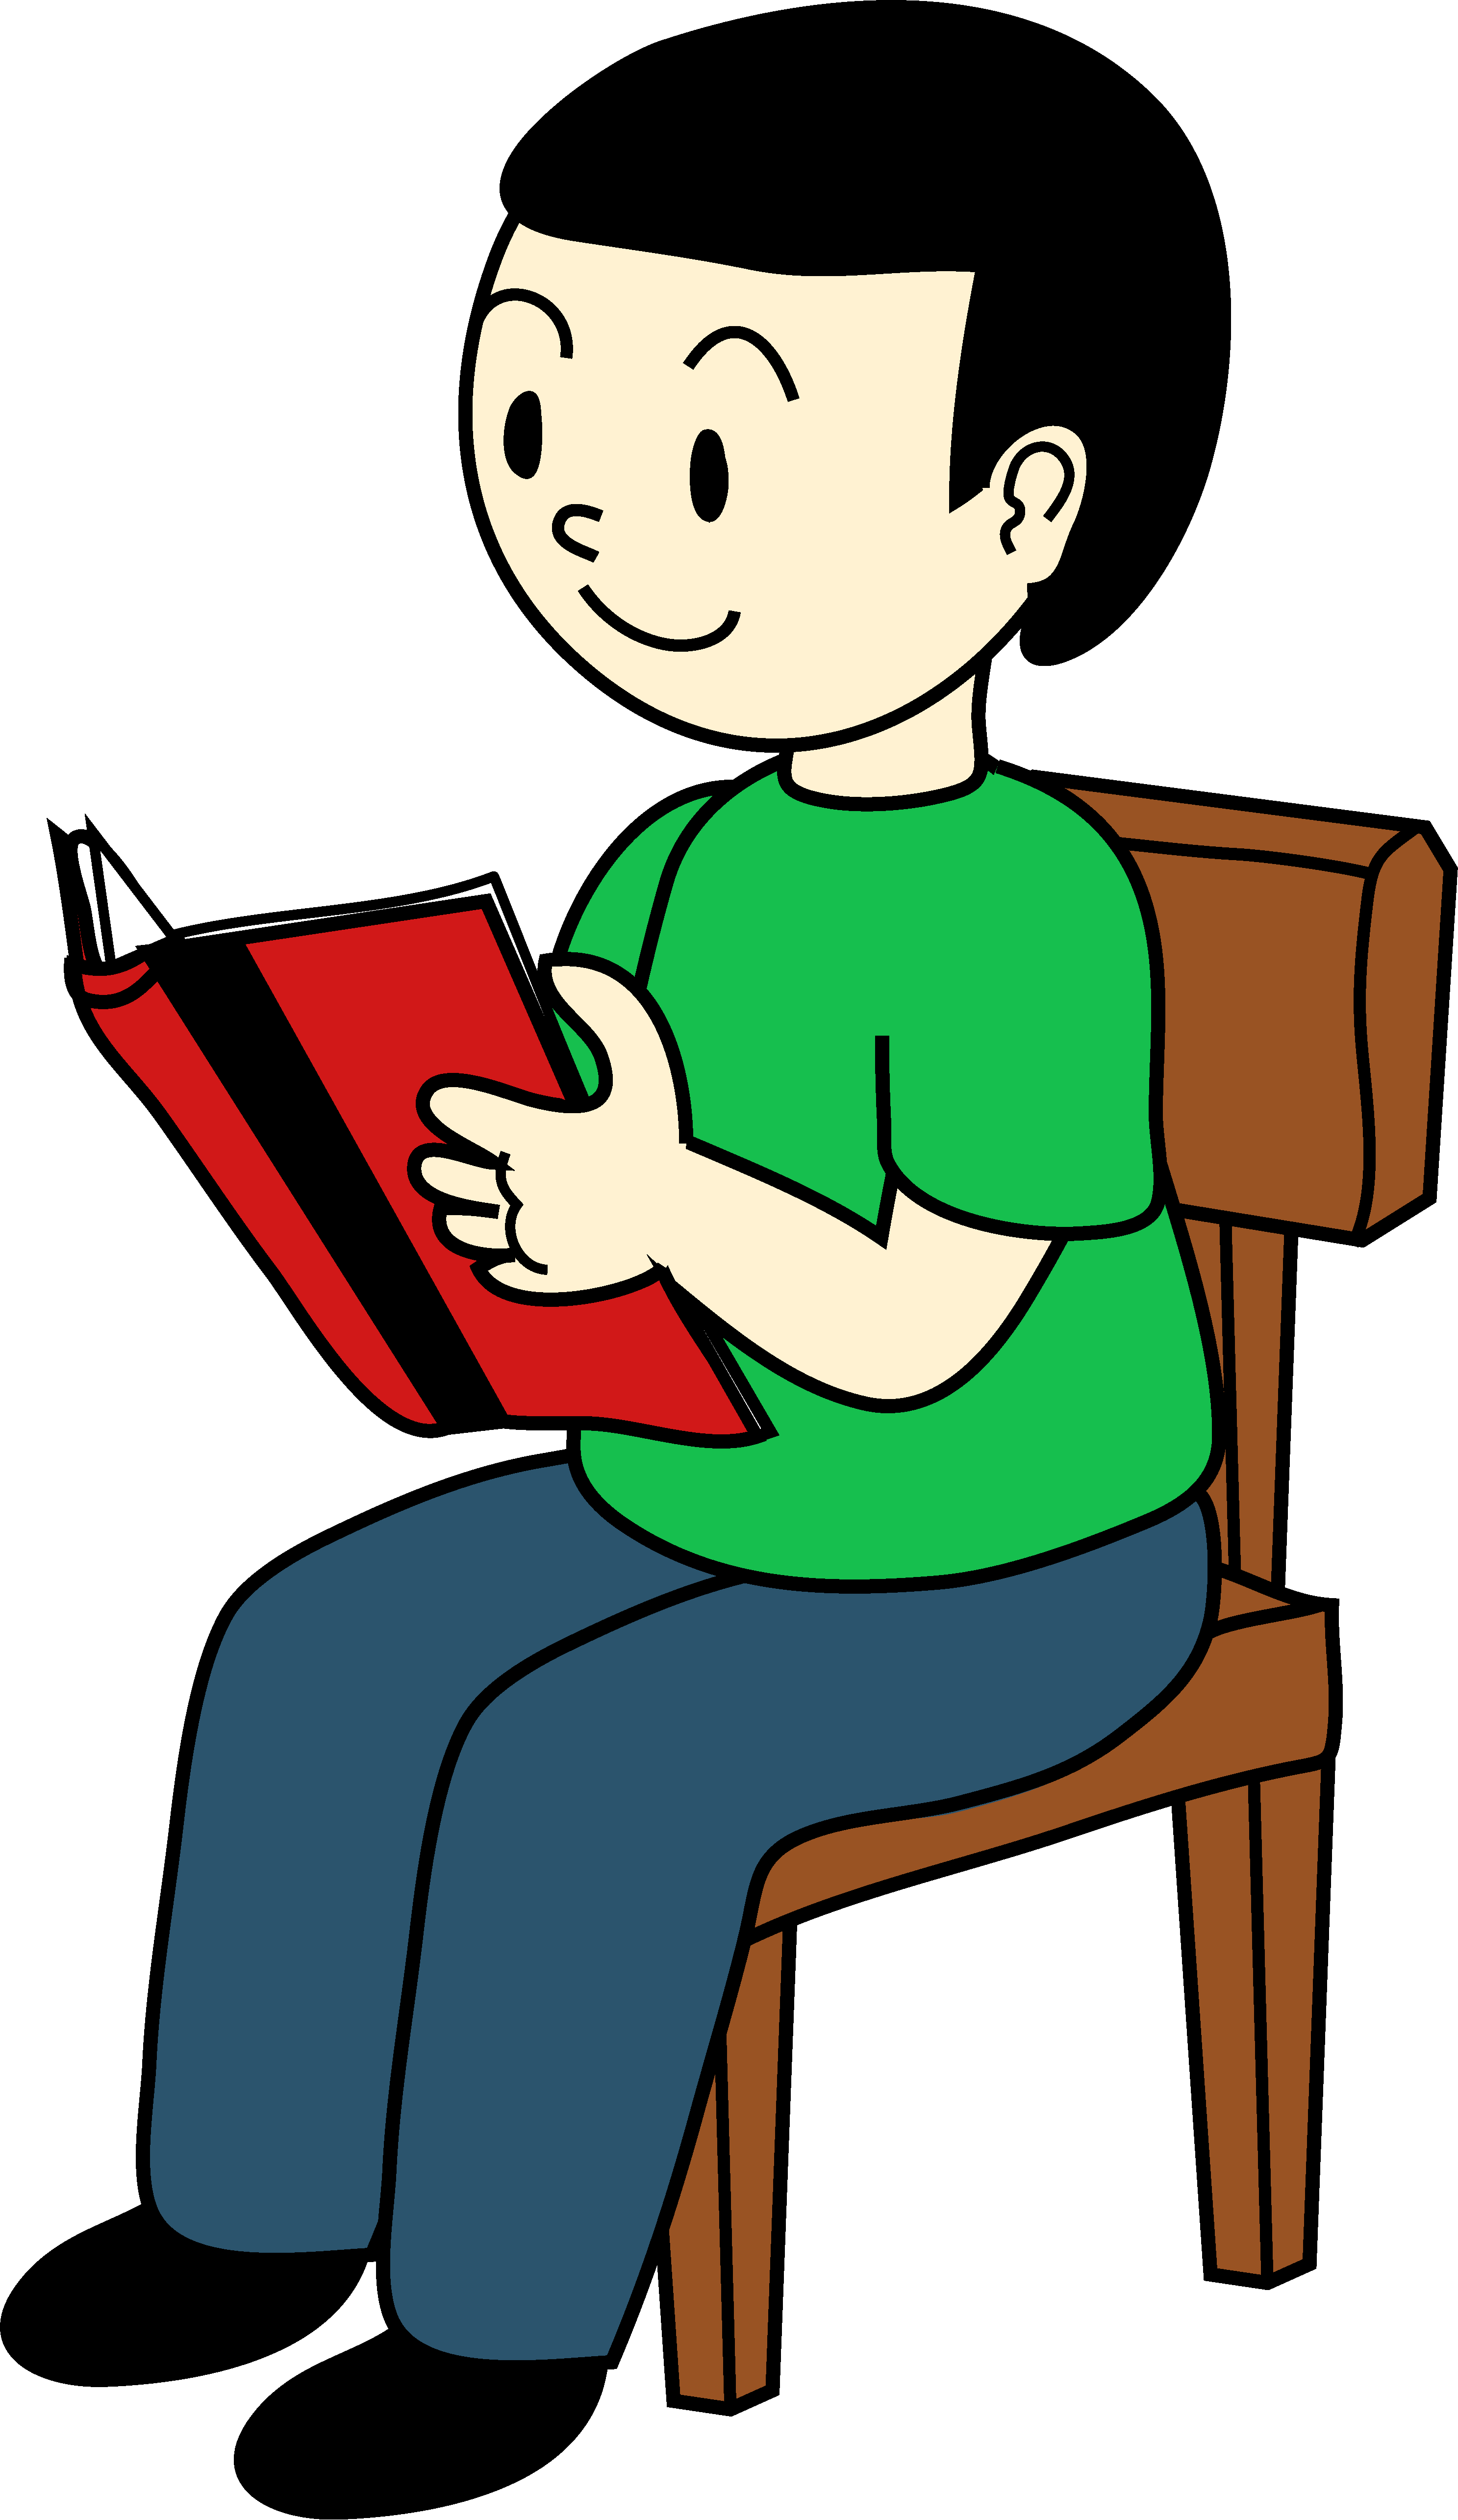 Chair clipart sit in. Boy sitting on reading